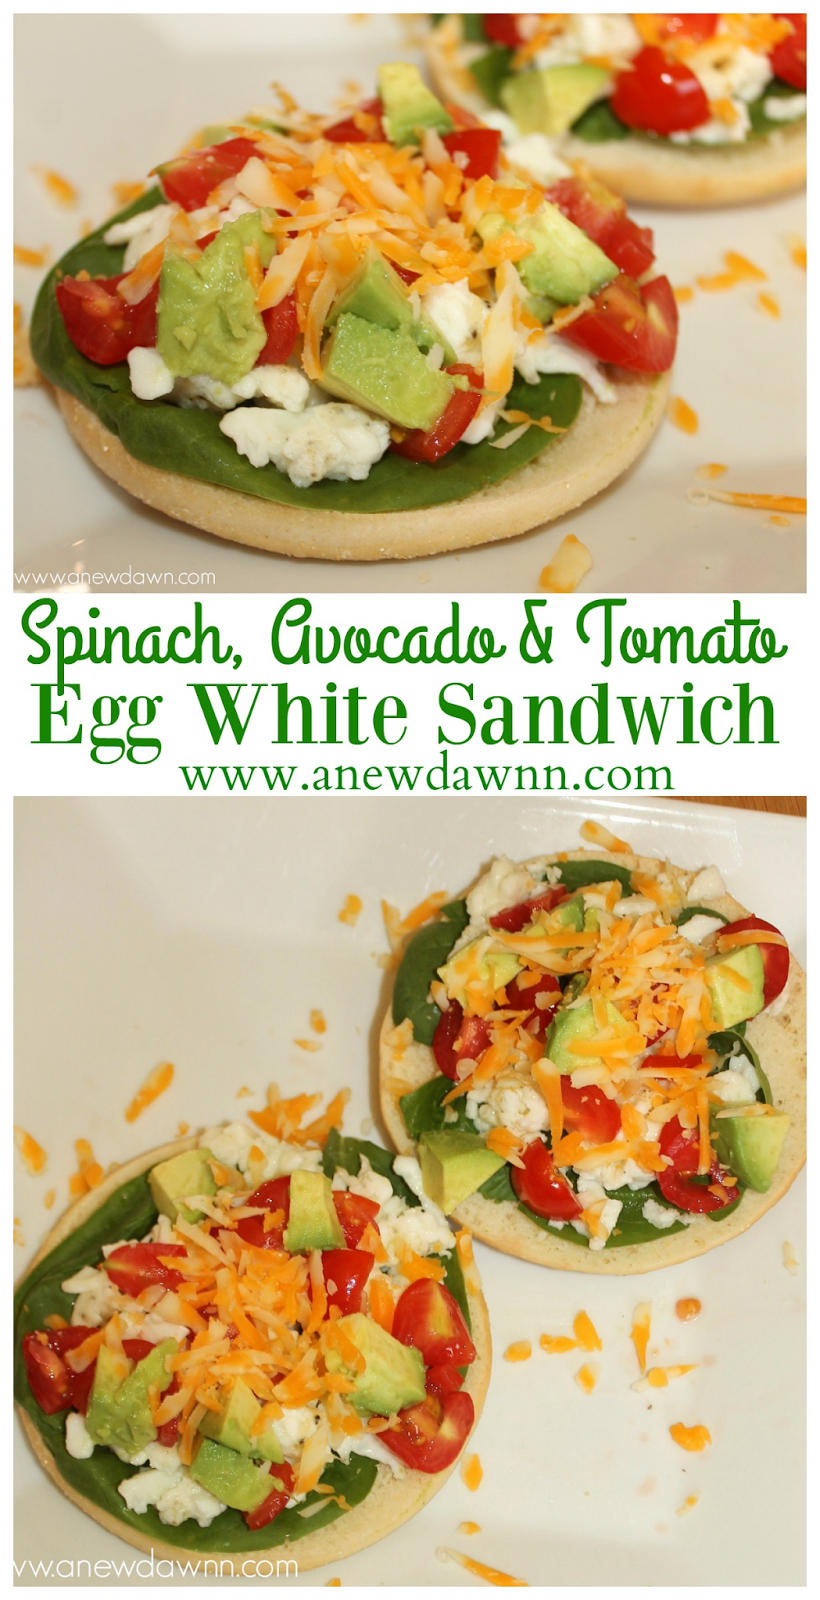 Spinach Avocado Tomato Egg White Sandwich